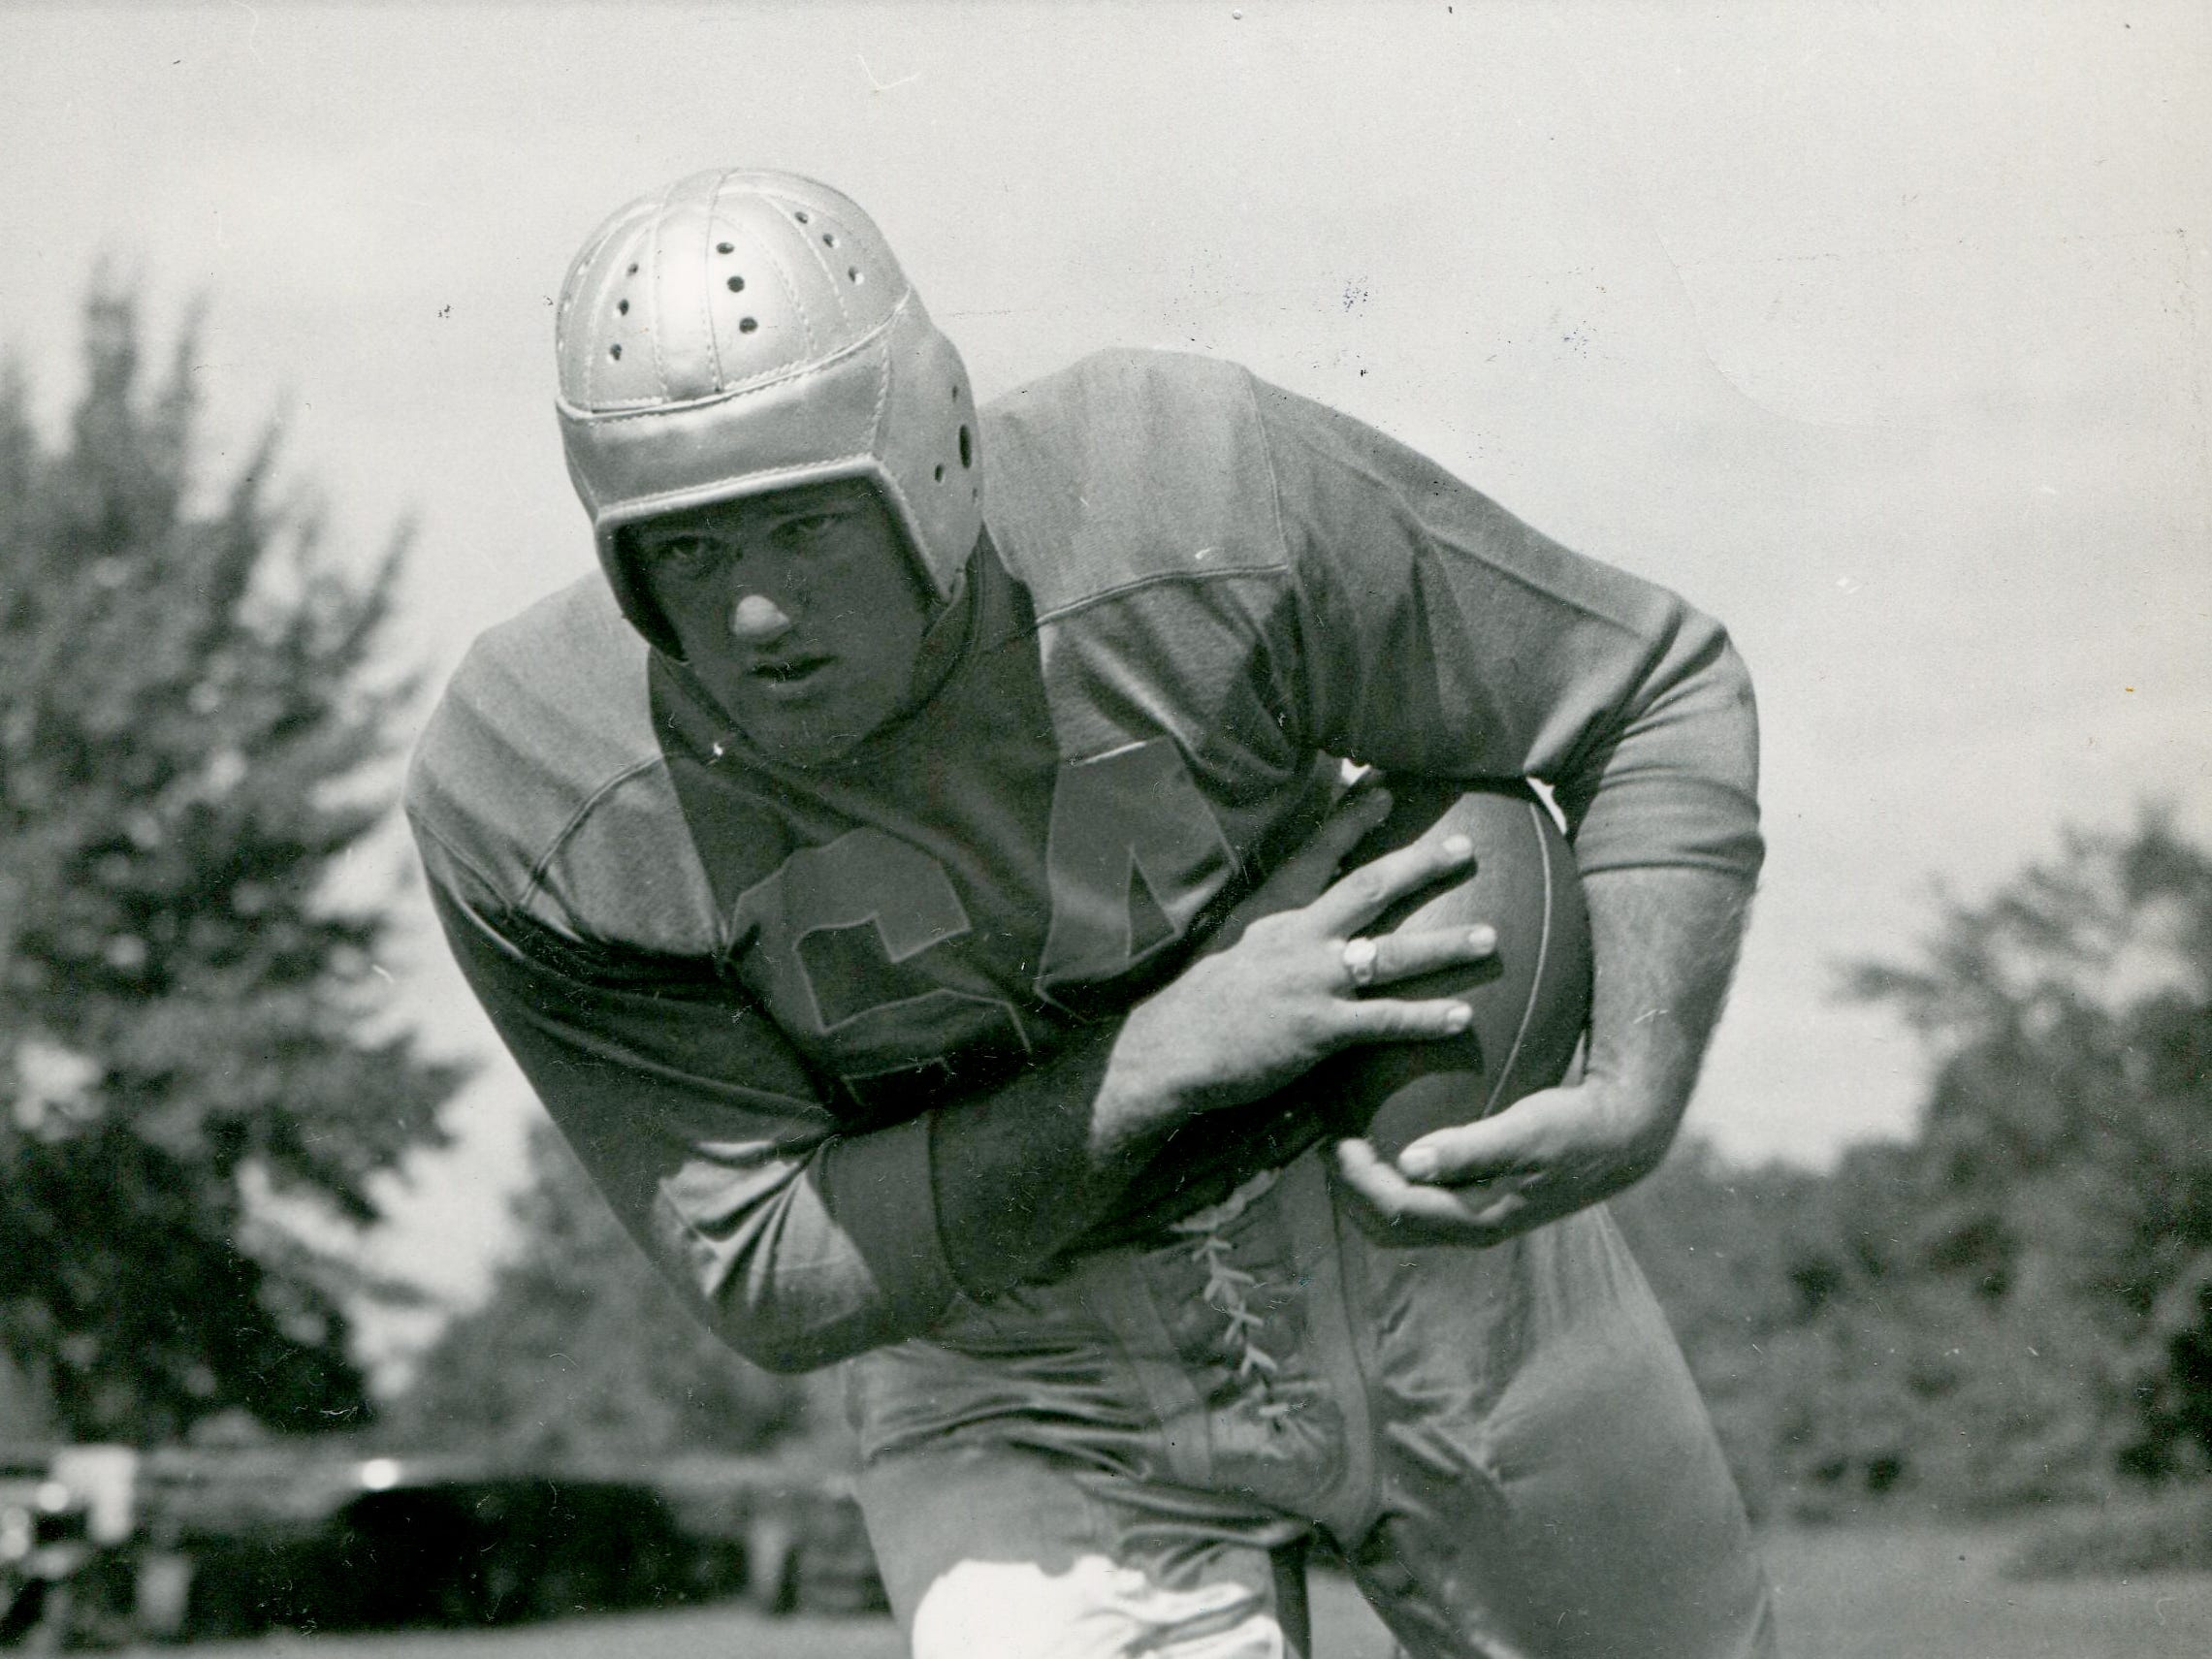 This bruiser was Ivan Trebotich, running back for the Detroit Lions. Imposing as he looked, he had only one rushing attempt in 1944, for a 2-yard gain.